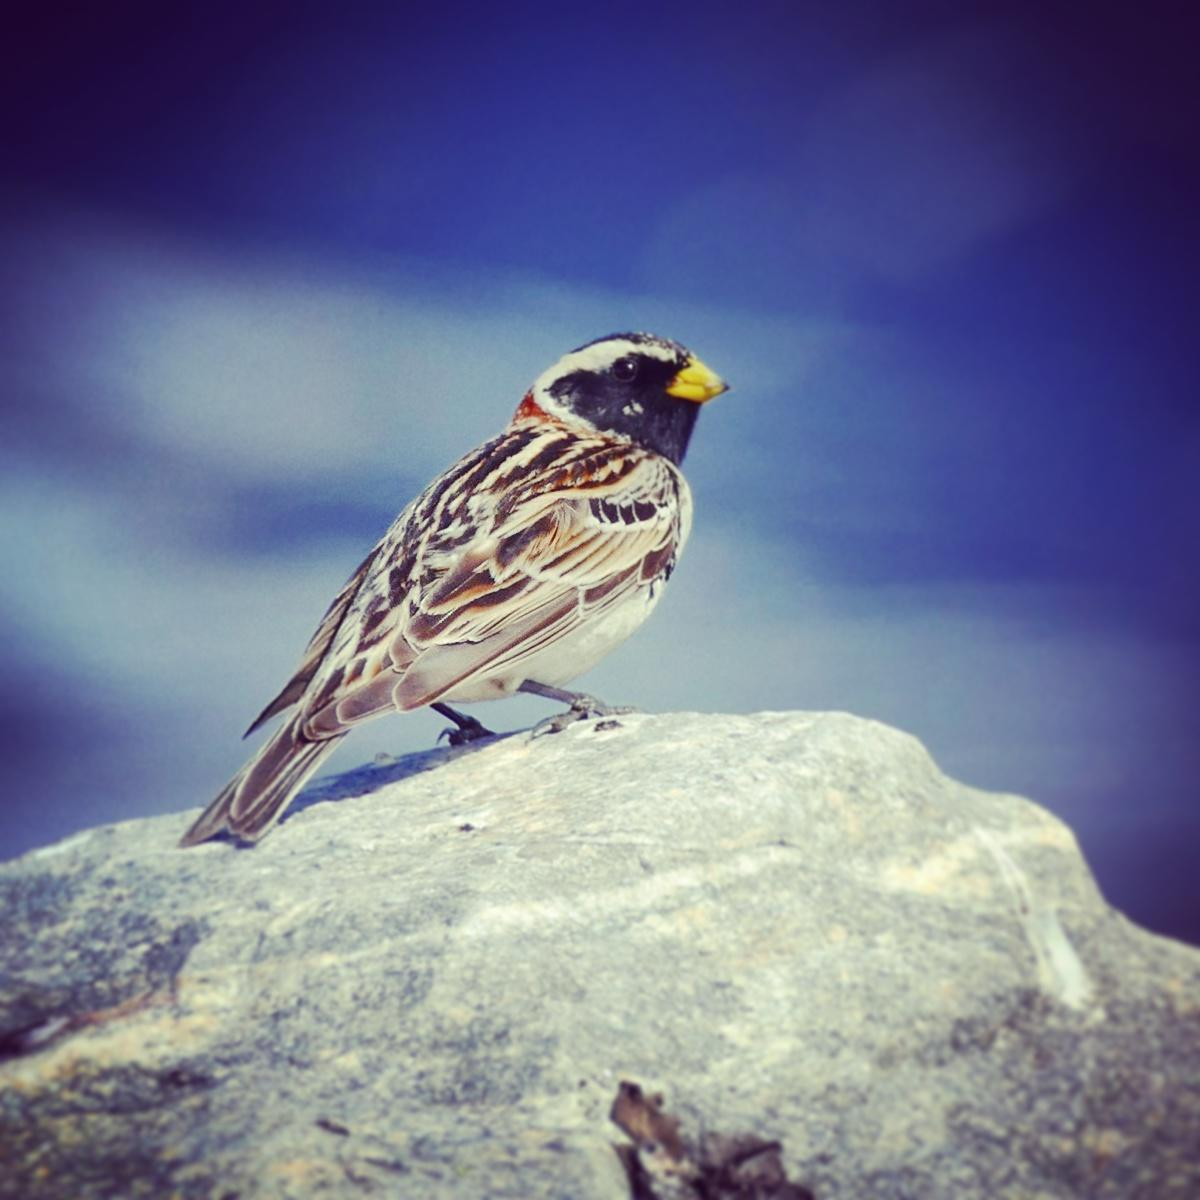 Noah's view of a Lapland Longspur in the Norwegian mountains. Noah Strycker